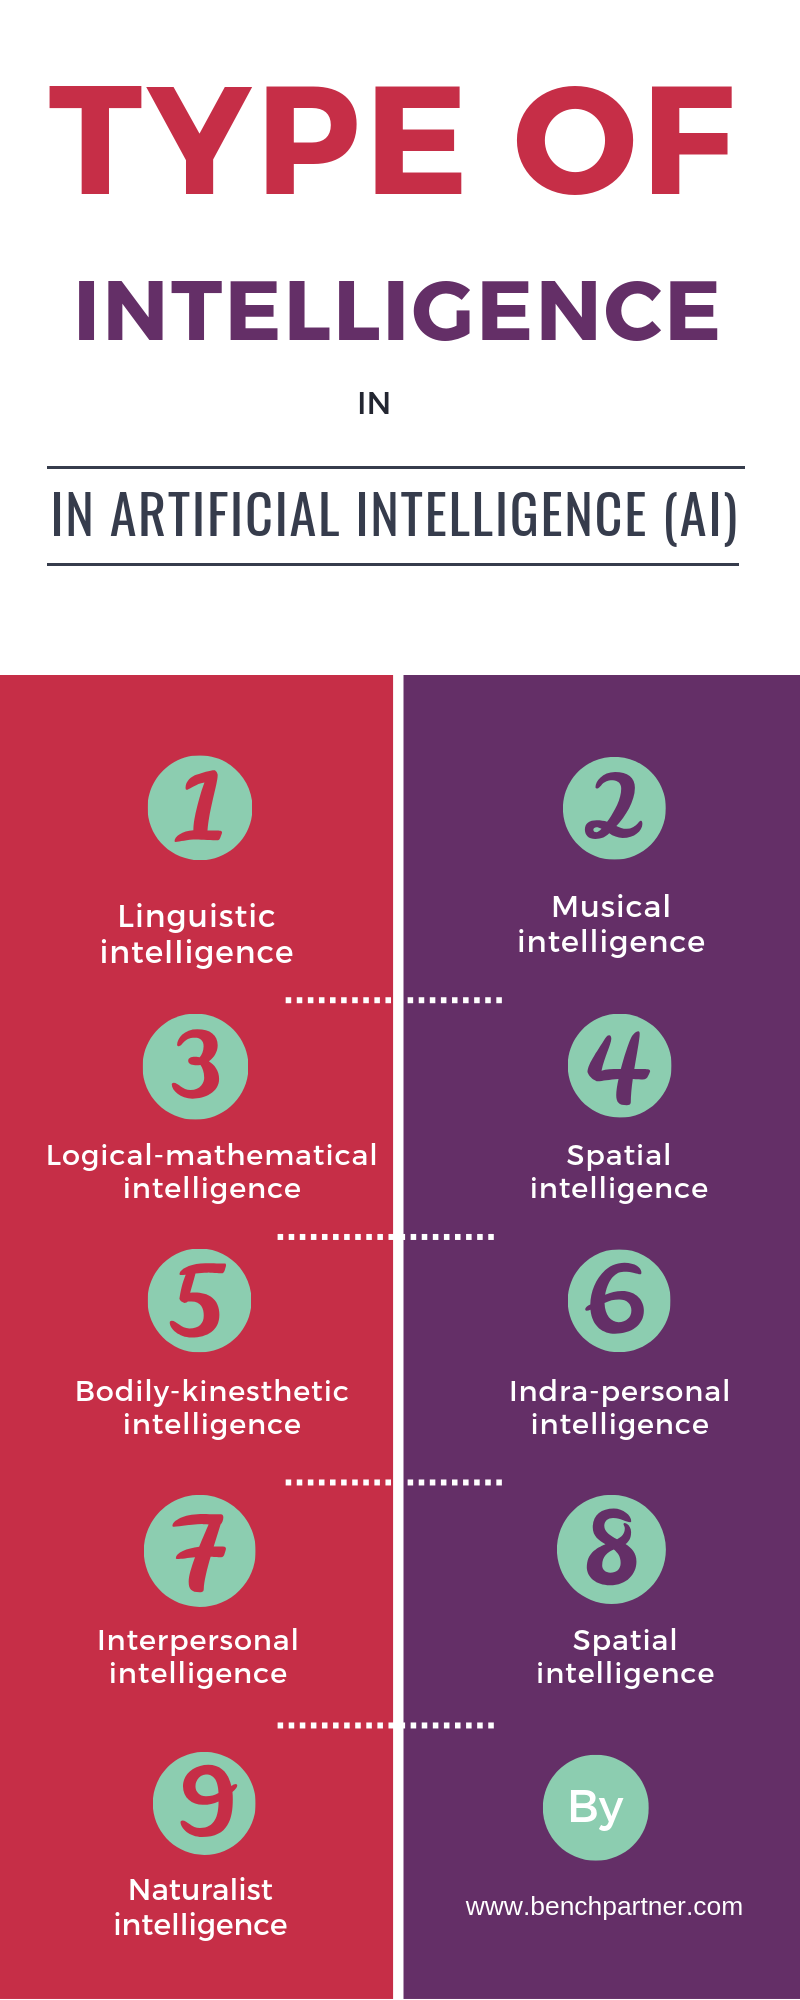 Types of Intelligence in Artificial Intelligence (AI)